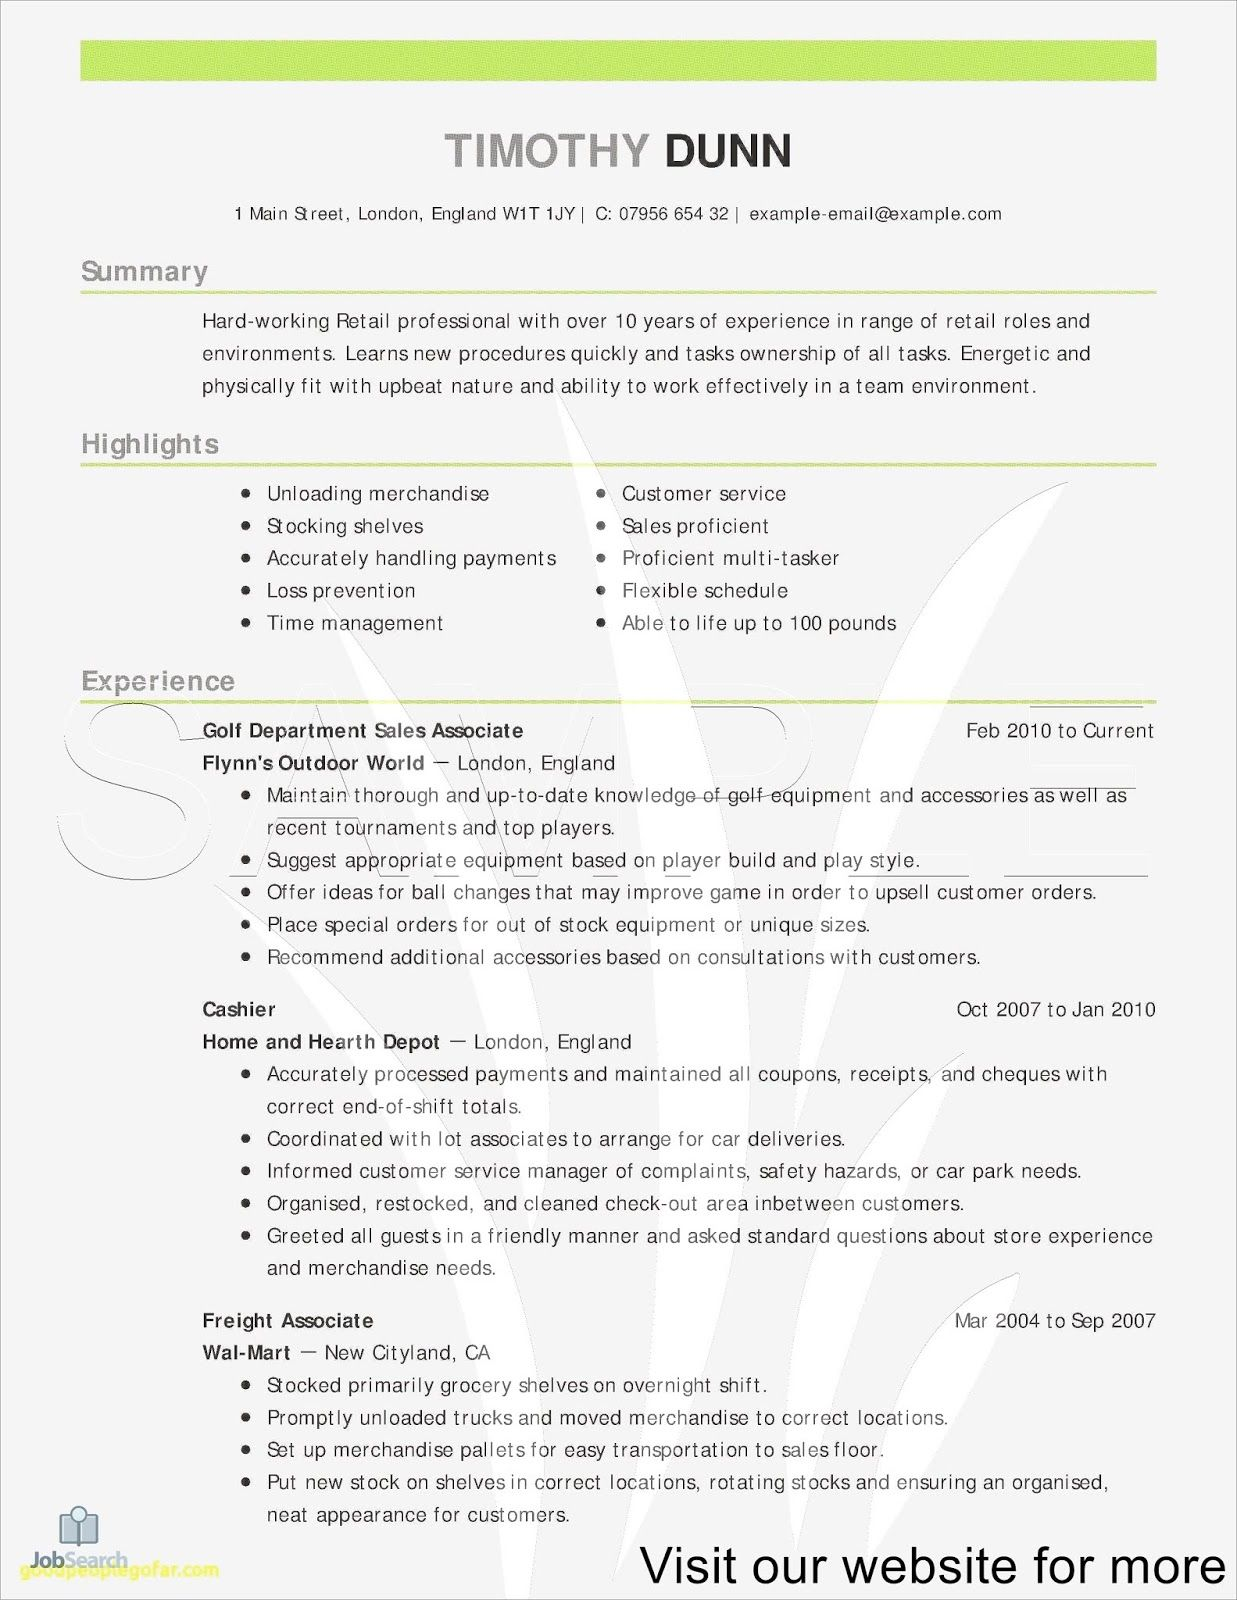 free resume templates word ideas template for starter best practices low experience Resume Free Resume Templates For Word Starter 2020